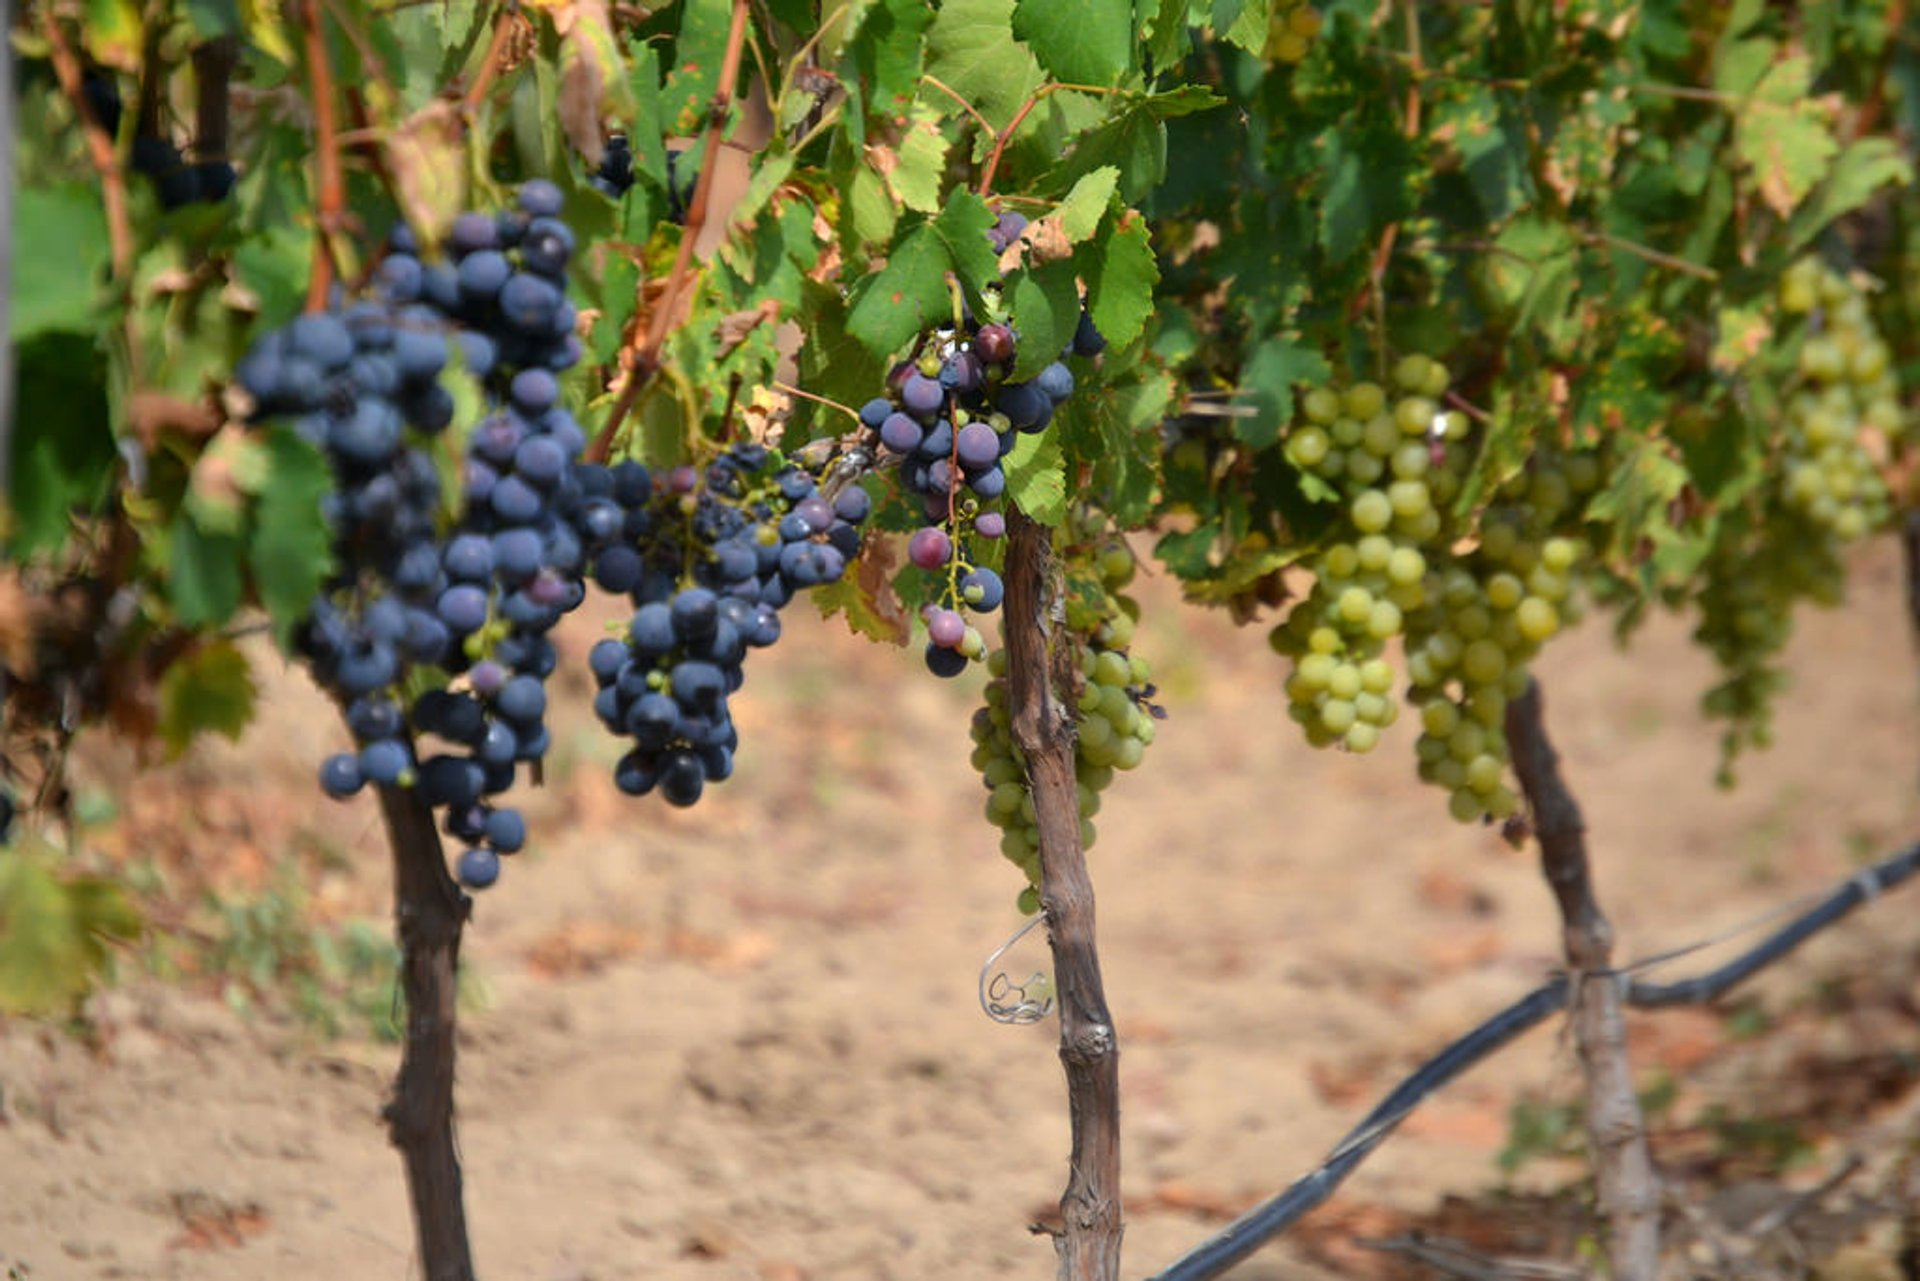 Grape Harvest in Bolivia 2020 - Best Time